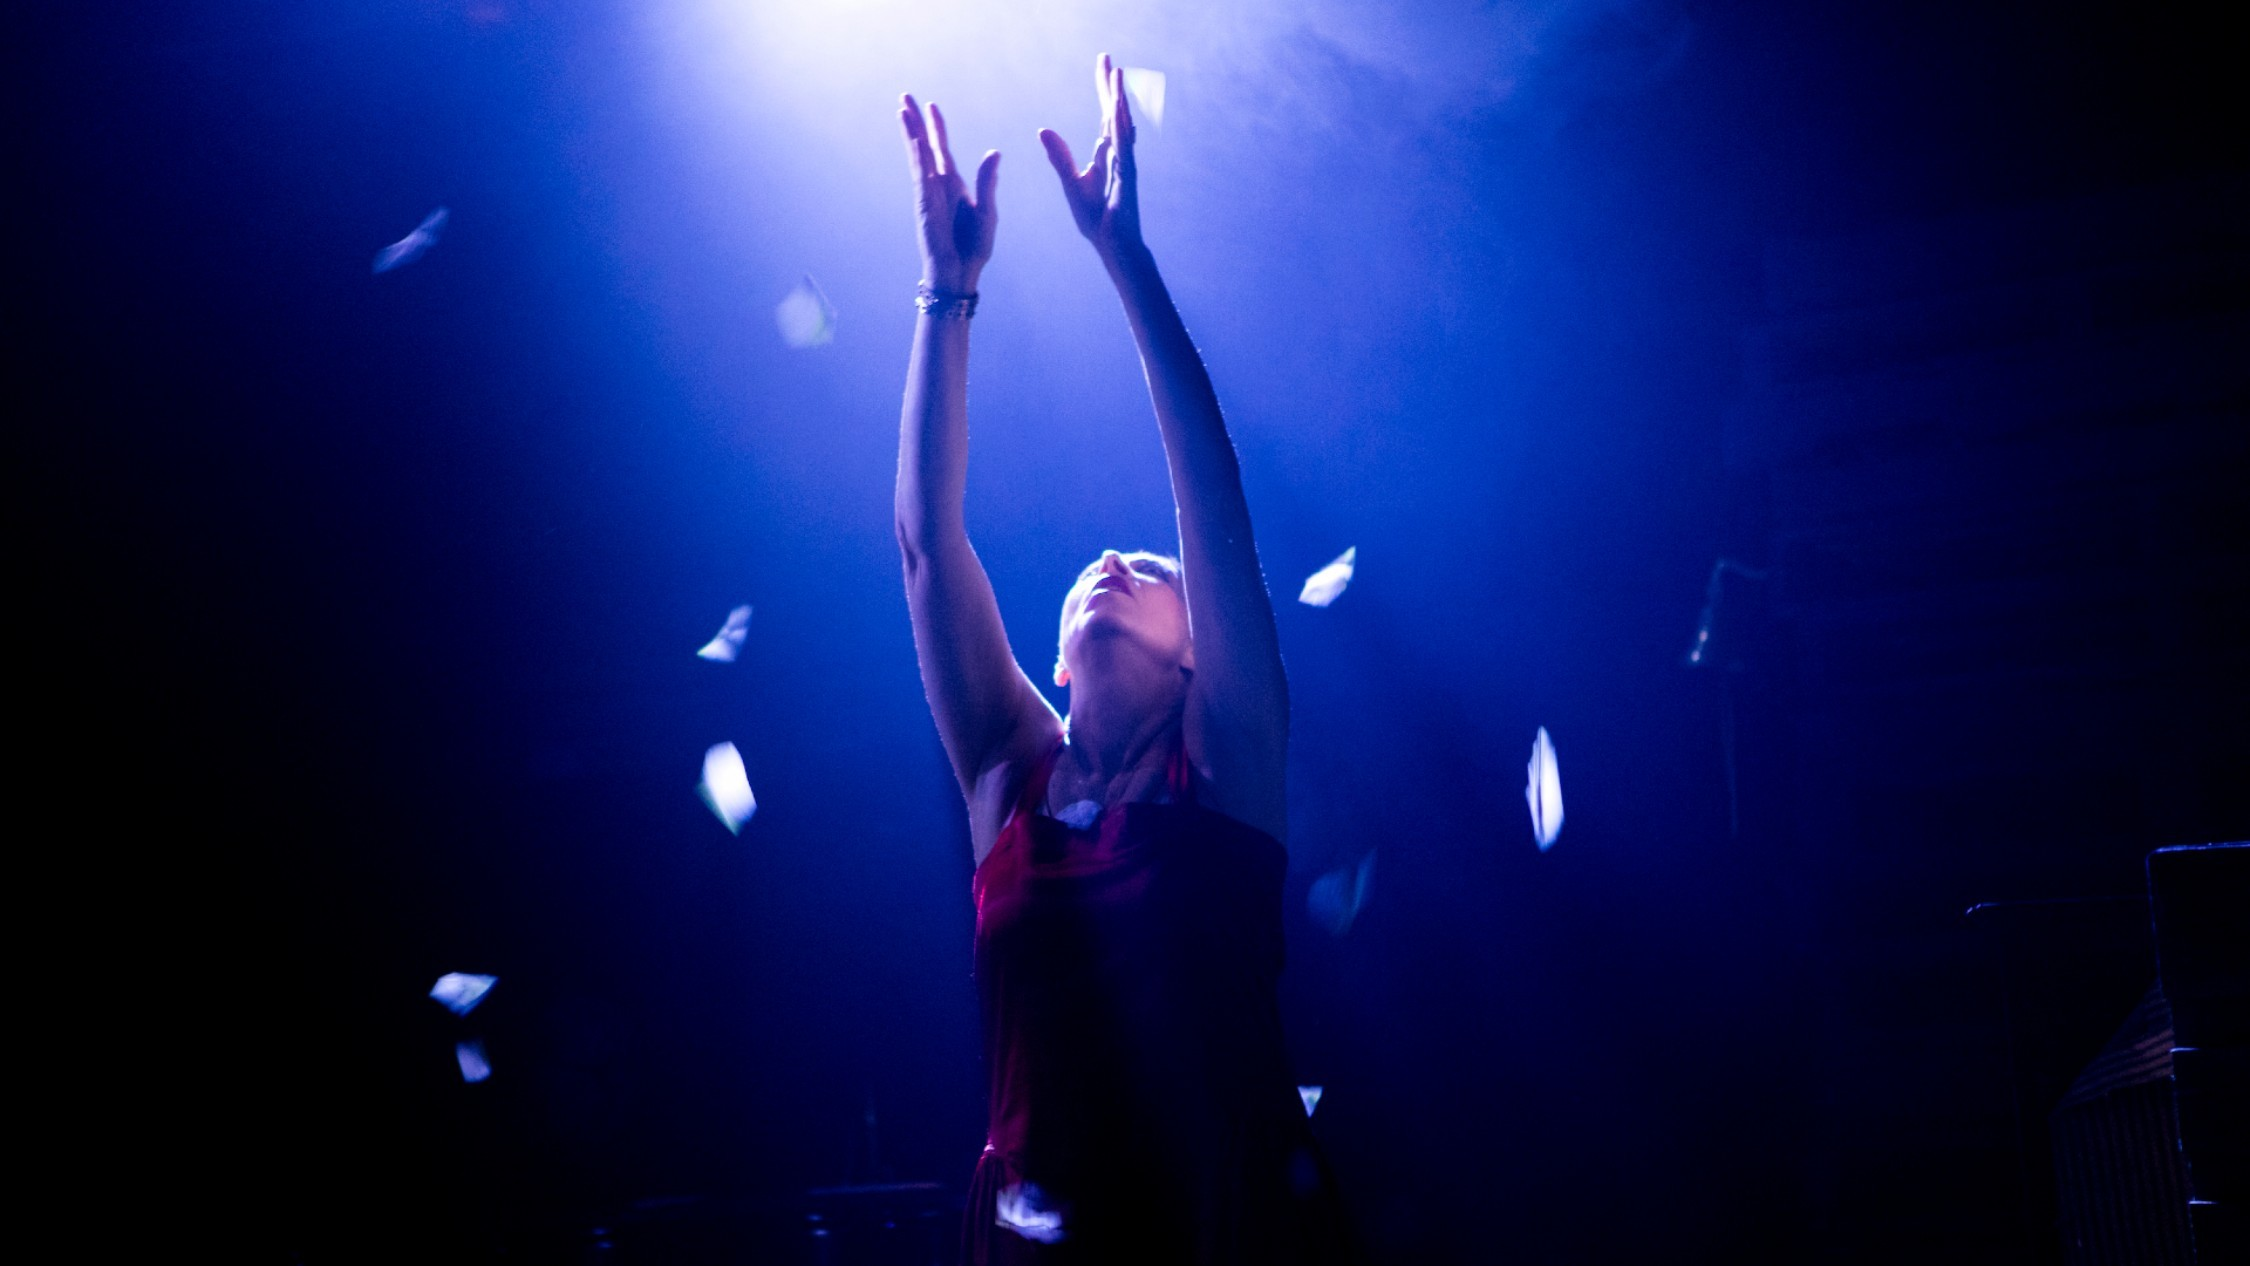 A woman in a red sleeveless top reaches or a light in the dark as feathers float down